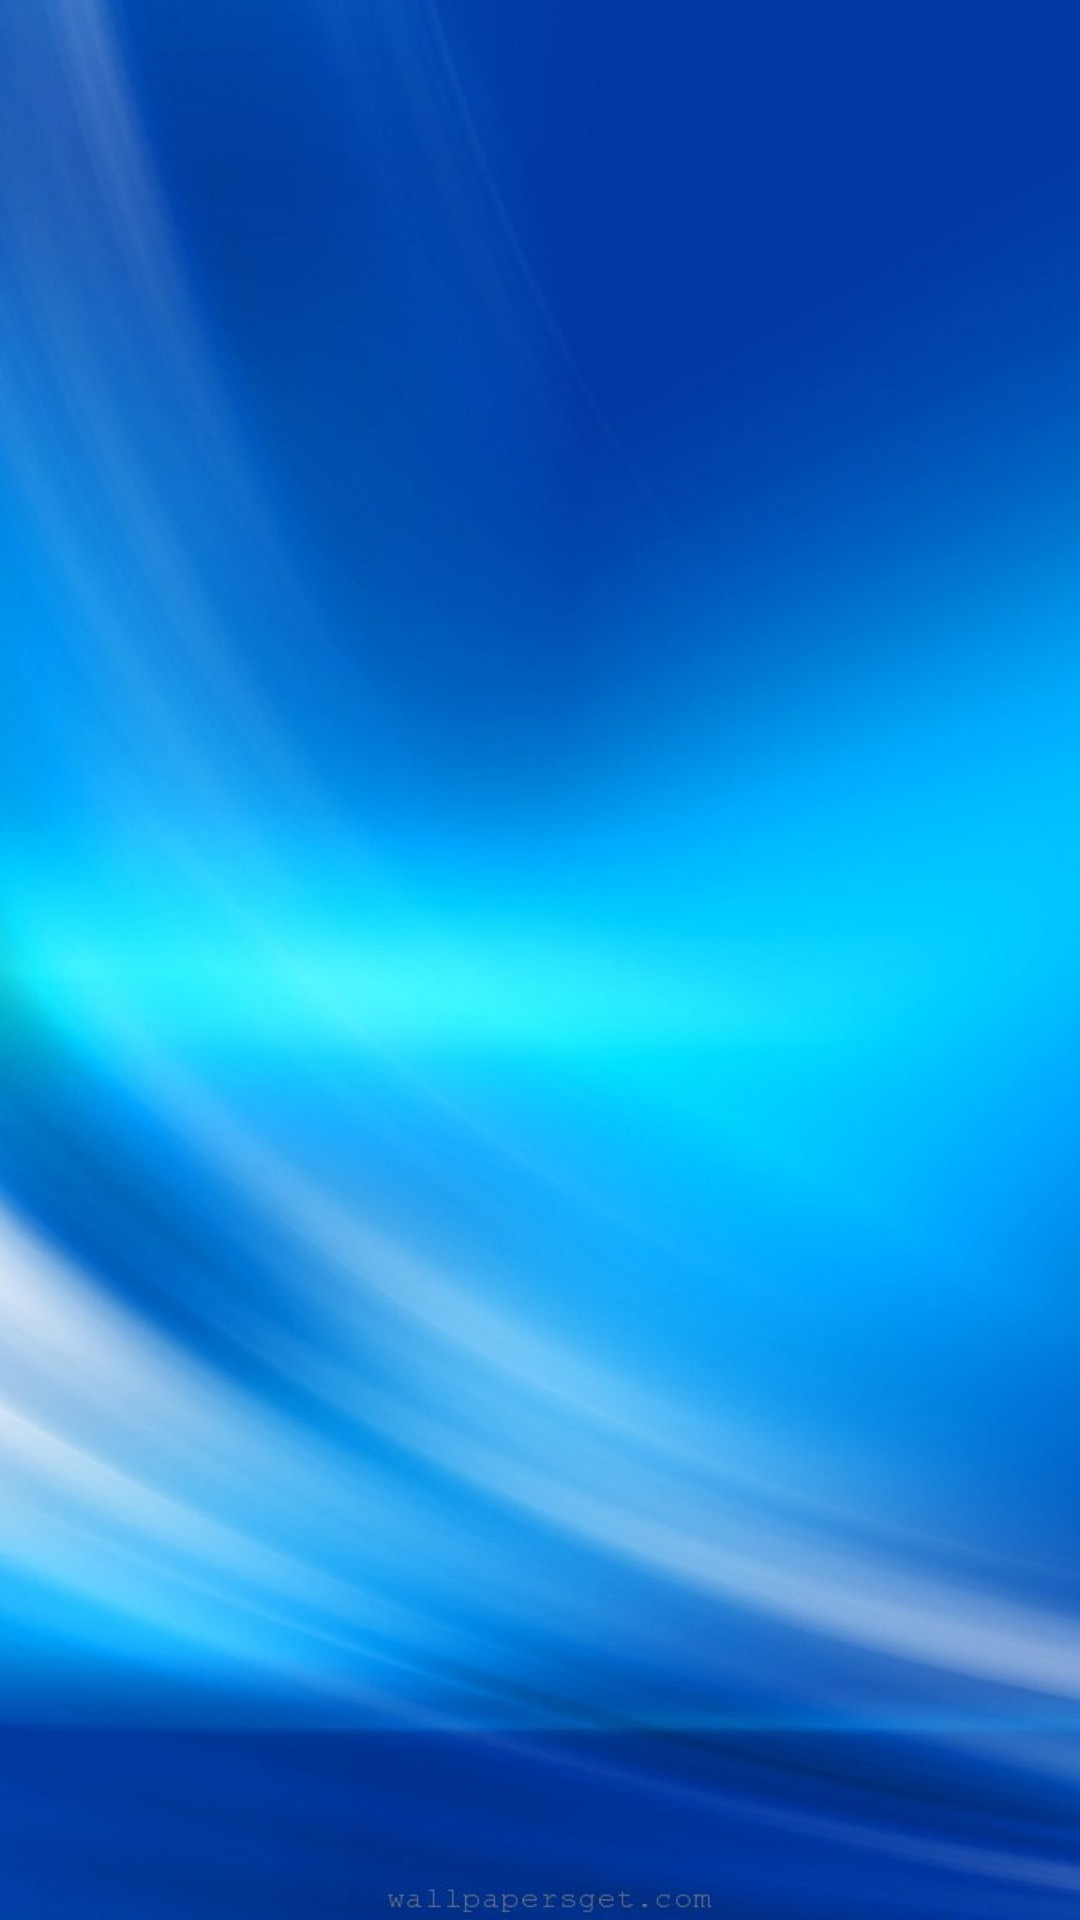 iPhone 8 Plus,7 Plus,6s Plus 壁紙 wallpaper 0360